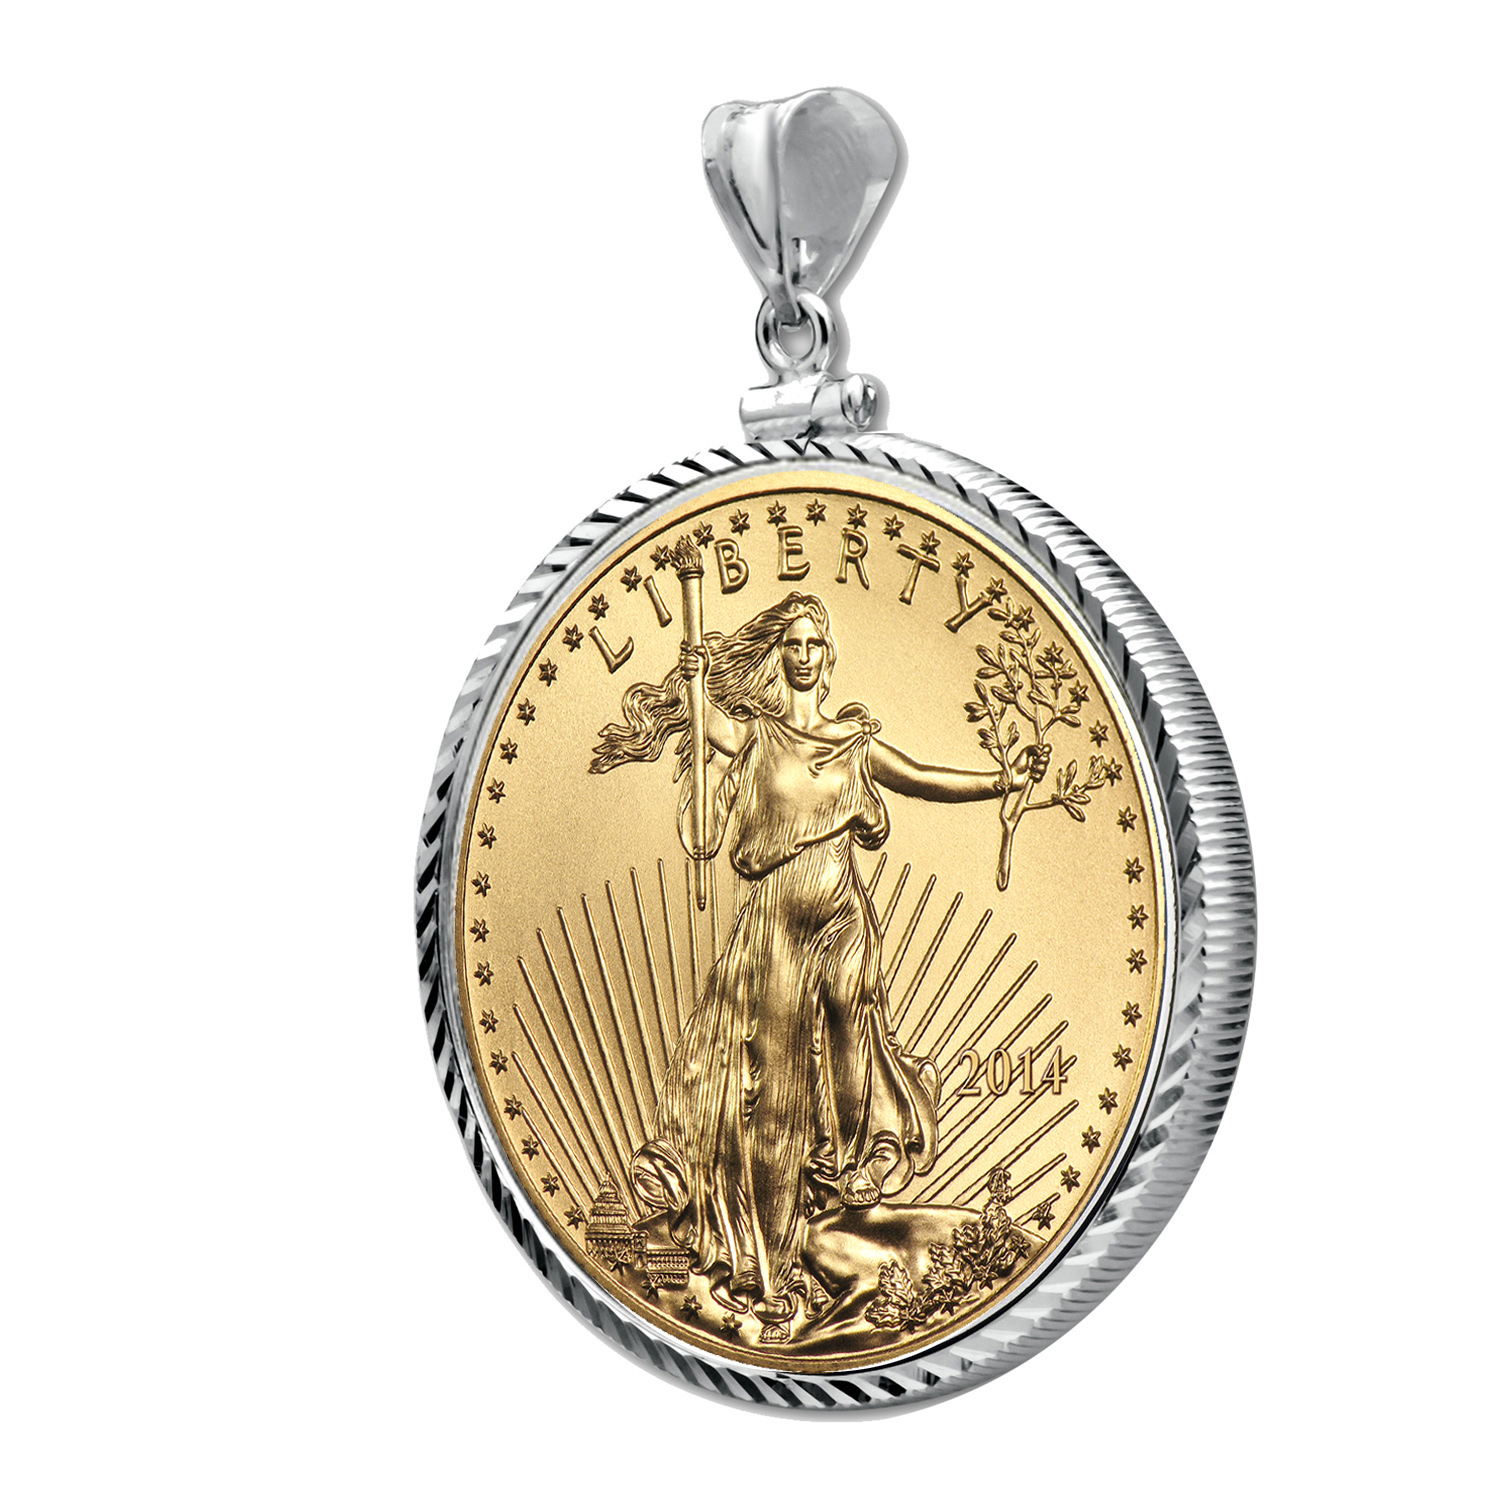 2014 1/4 oz Gold Eagle White Gold Pendant (Diamond-ScrewTop Bzl)